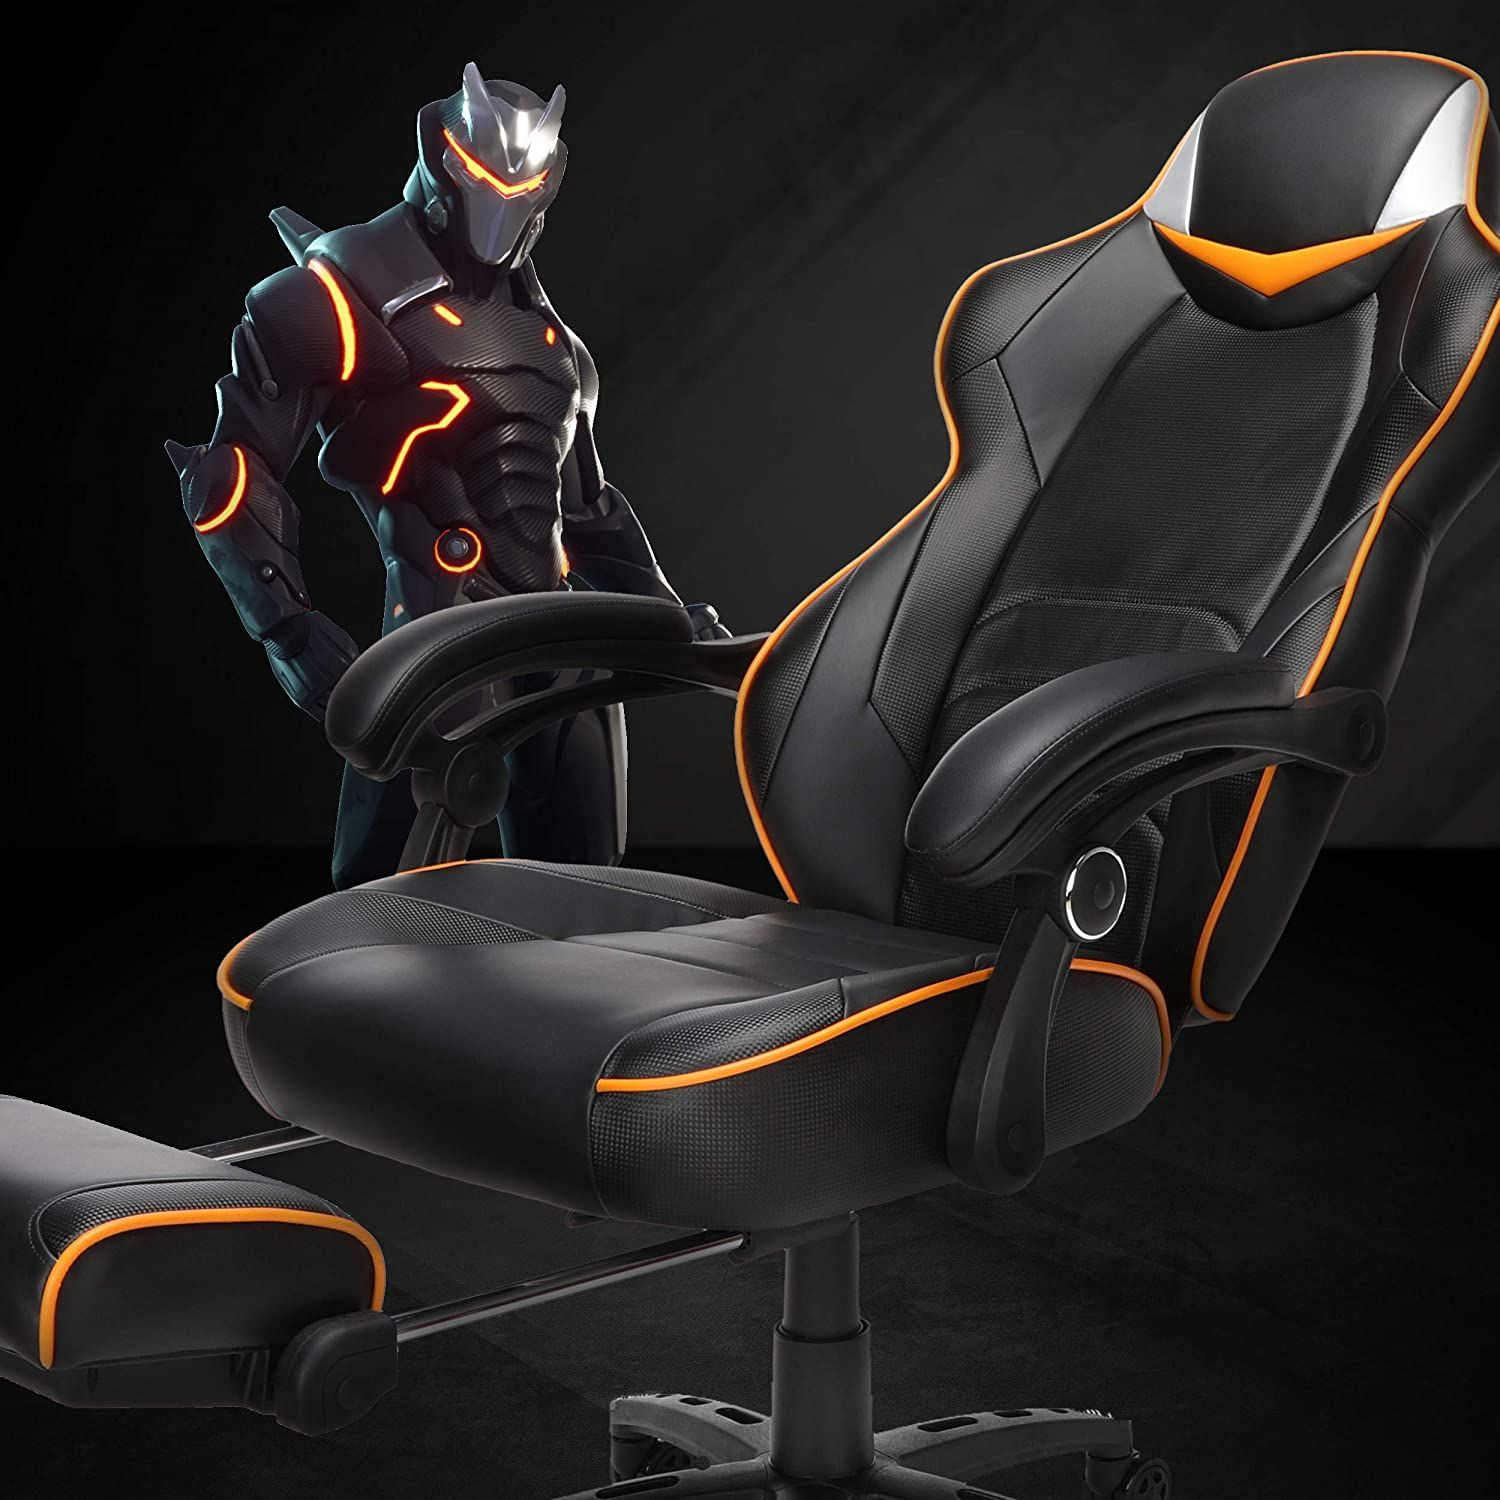 Best Gaming Chairs Under 500 In 2020 Gaming Accessories Comspmag